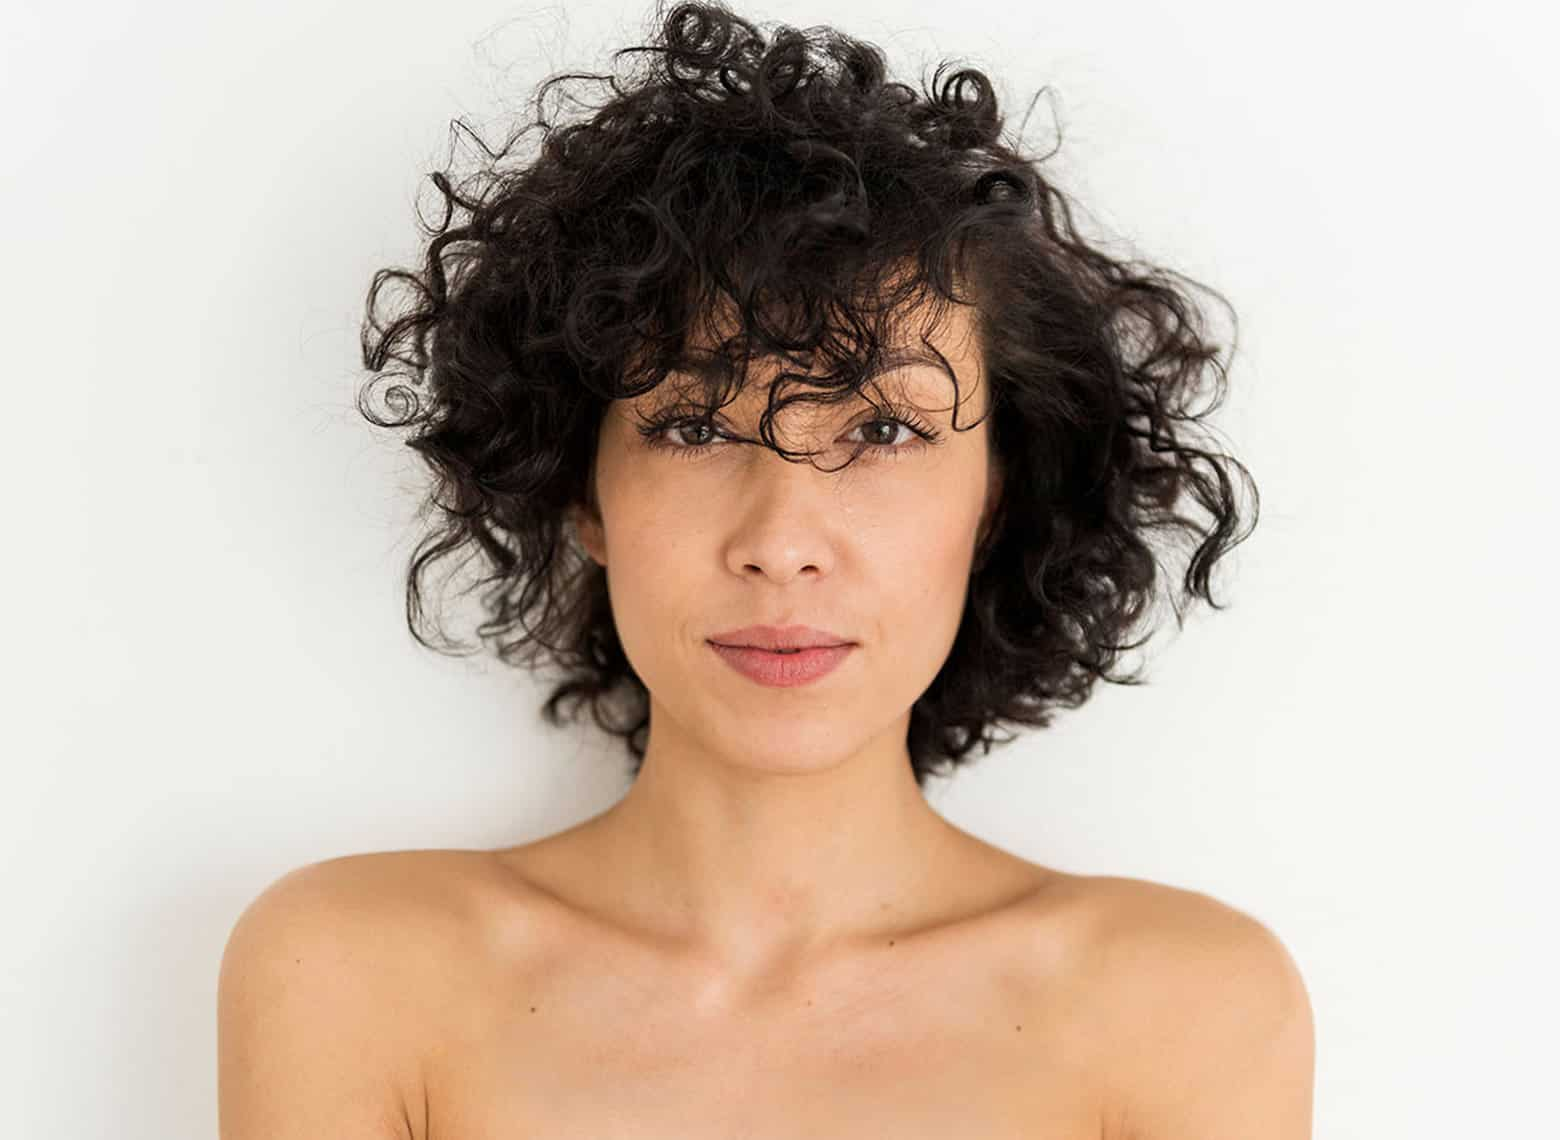 woman with shaggy curls